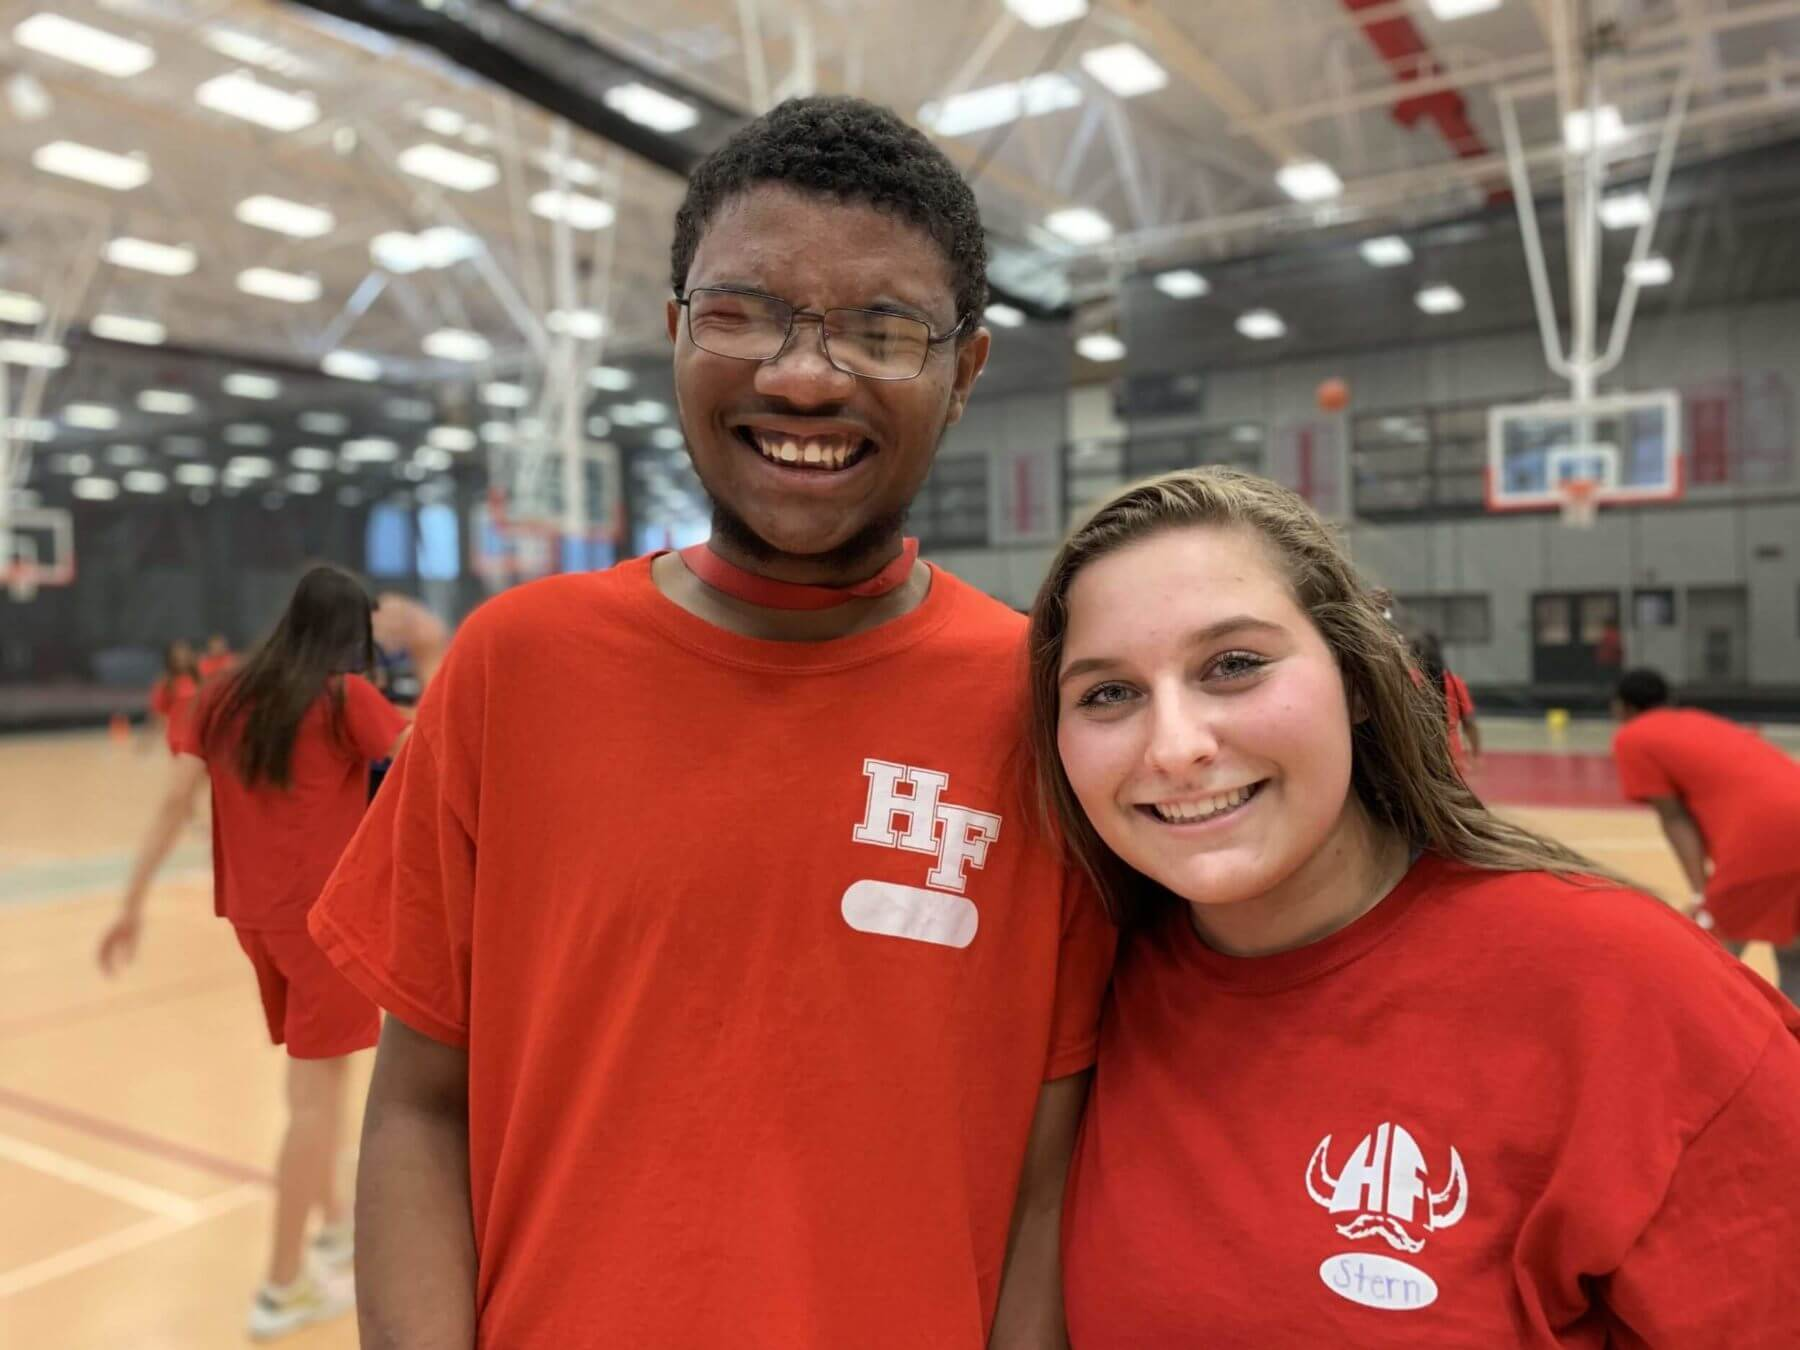 Students Donzel and Alyson posing for a picture during Unified Physical Education class.